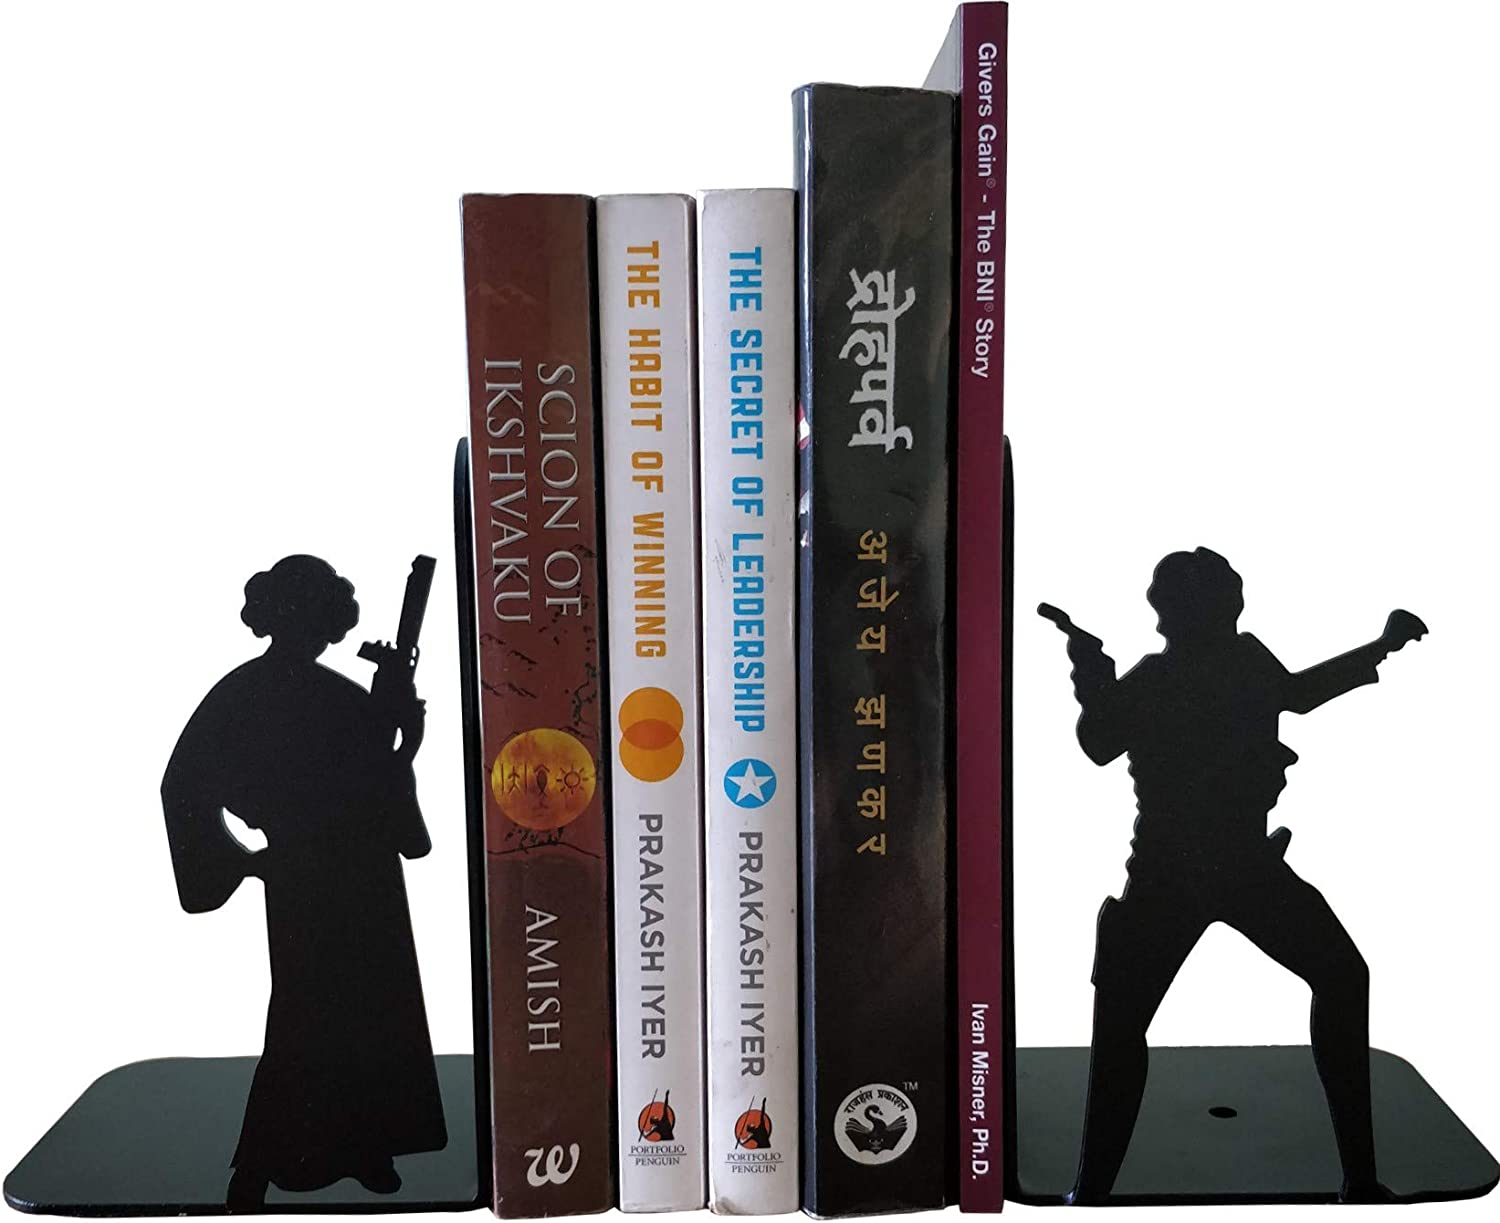 Simhoo Metal Concise Universal Bookends//Books Stopper//Surports,Sloted Gauge Steel Economy Book end for Shelves,Office Desk,Library 6pcs Black